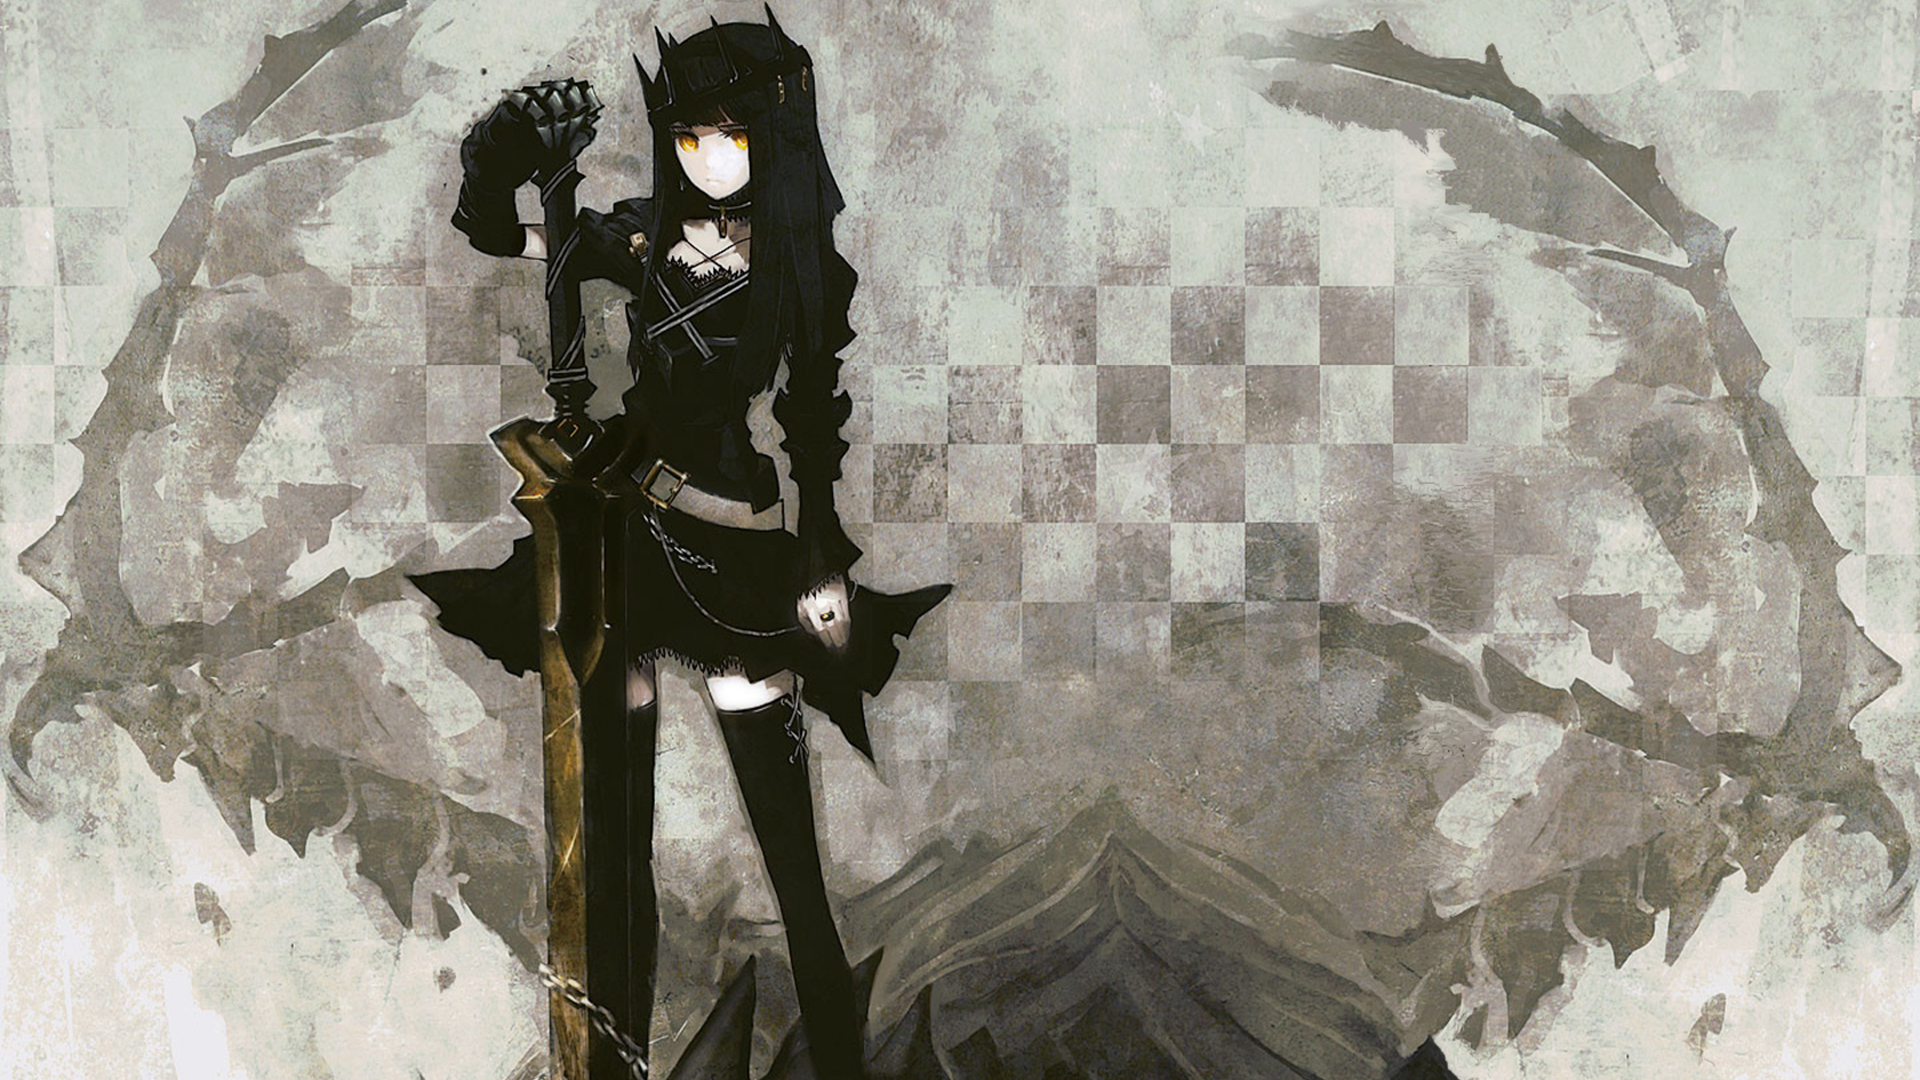 100 Wallpapers de anime HD Konachan-com-77816-black_rock_shooter-dragon_slayer-sword-weapon-yellow_eyes